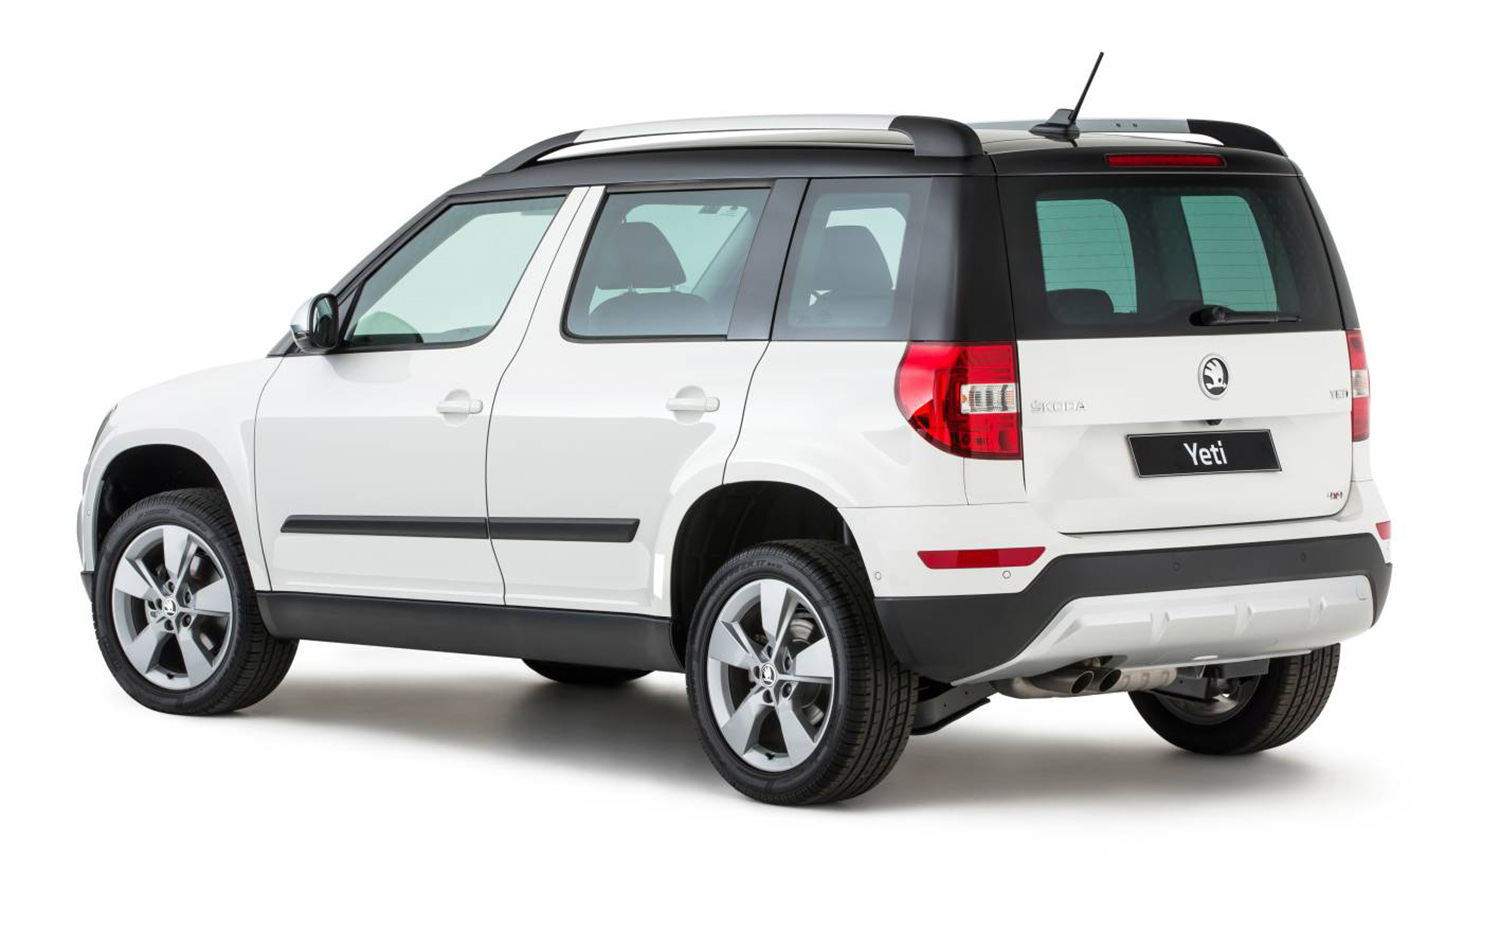 2017 skoda yeti pricing and specs 110tsi 4x4 outdoor from. Black Bedroom Furniture Sets. Home Design Ideas